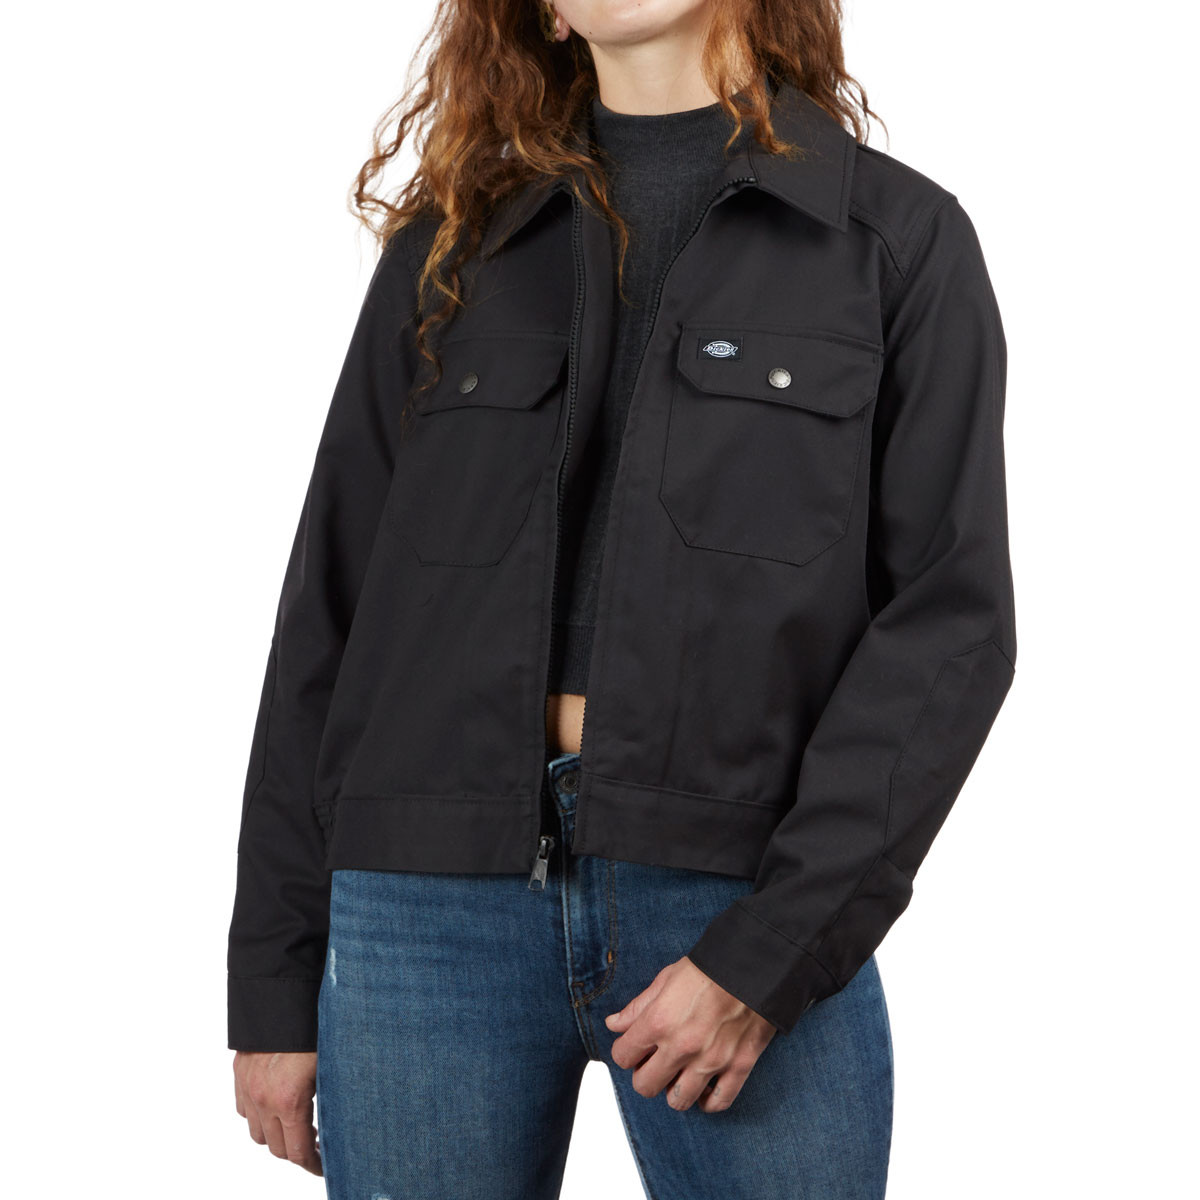 a4d4e2700ed0c Dickies Womens Twill Military Jacket - Black